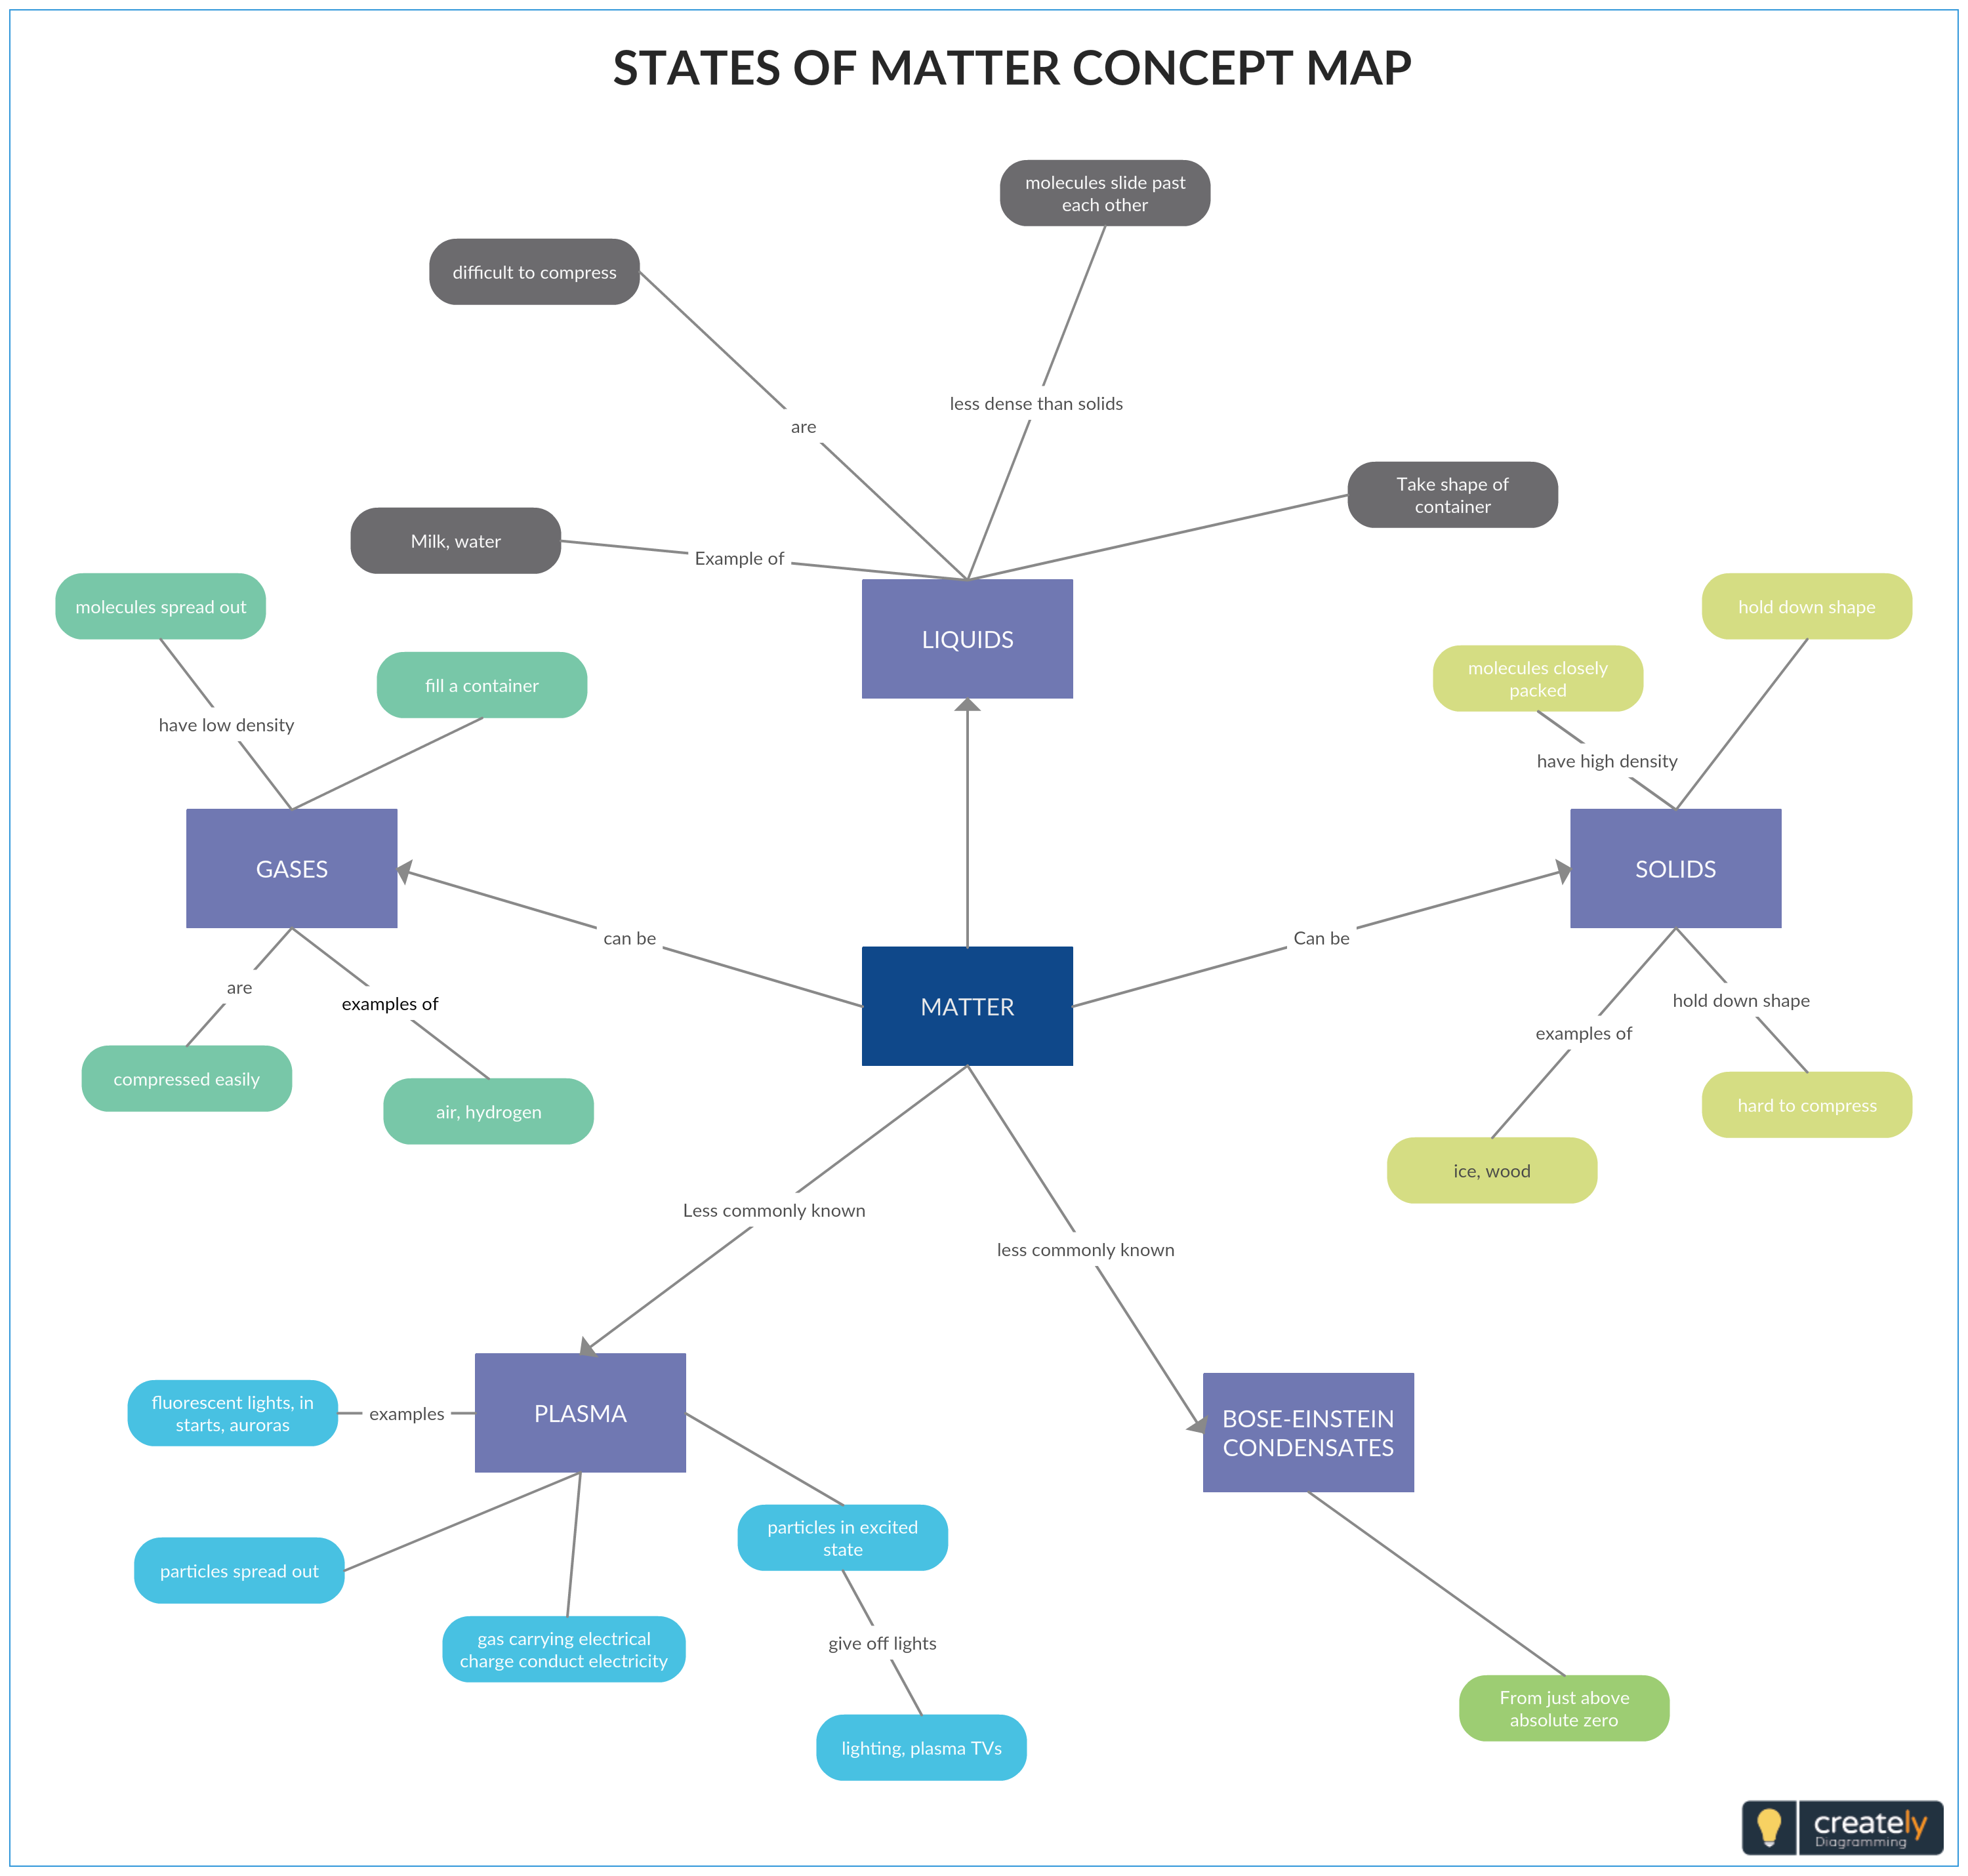 Concept Map Diagram.States Of Matter Concept Map Concept Map Showing The Classical